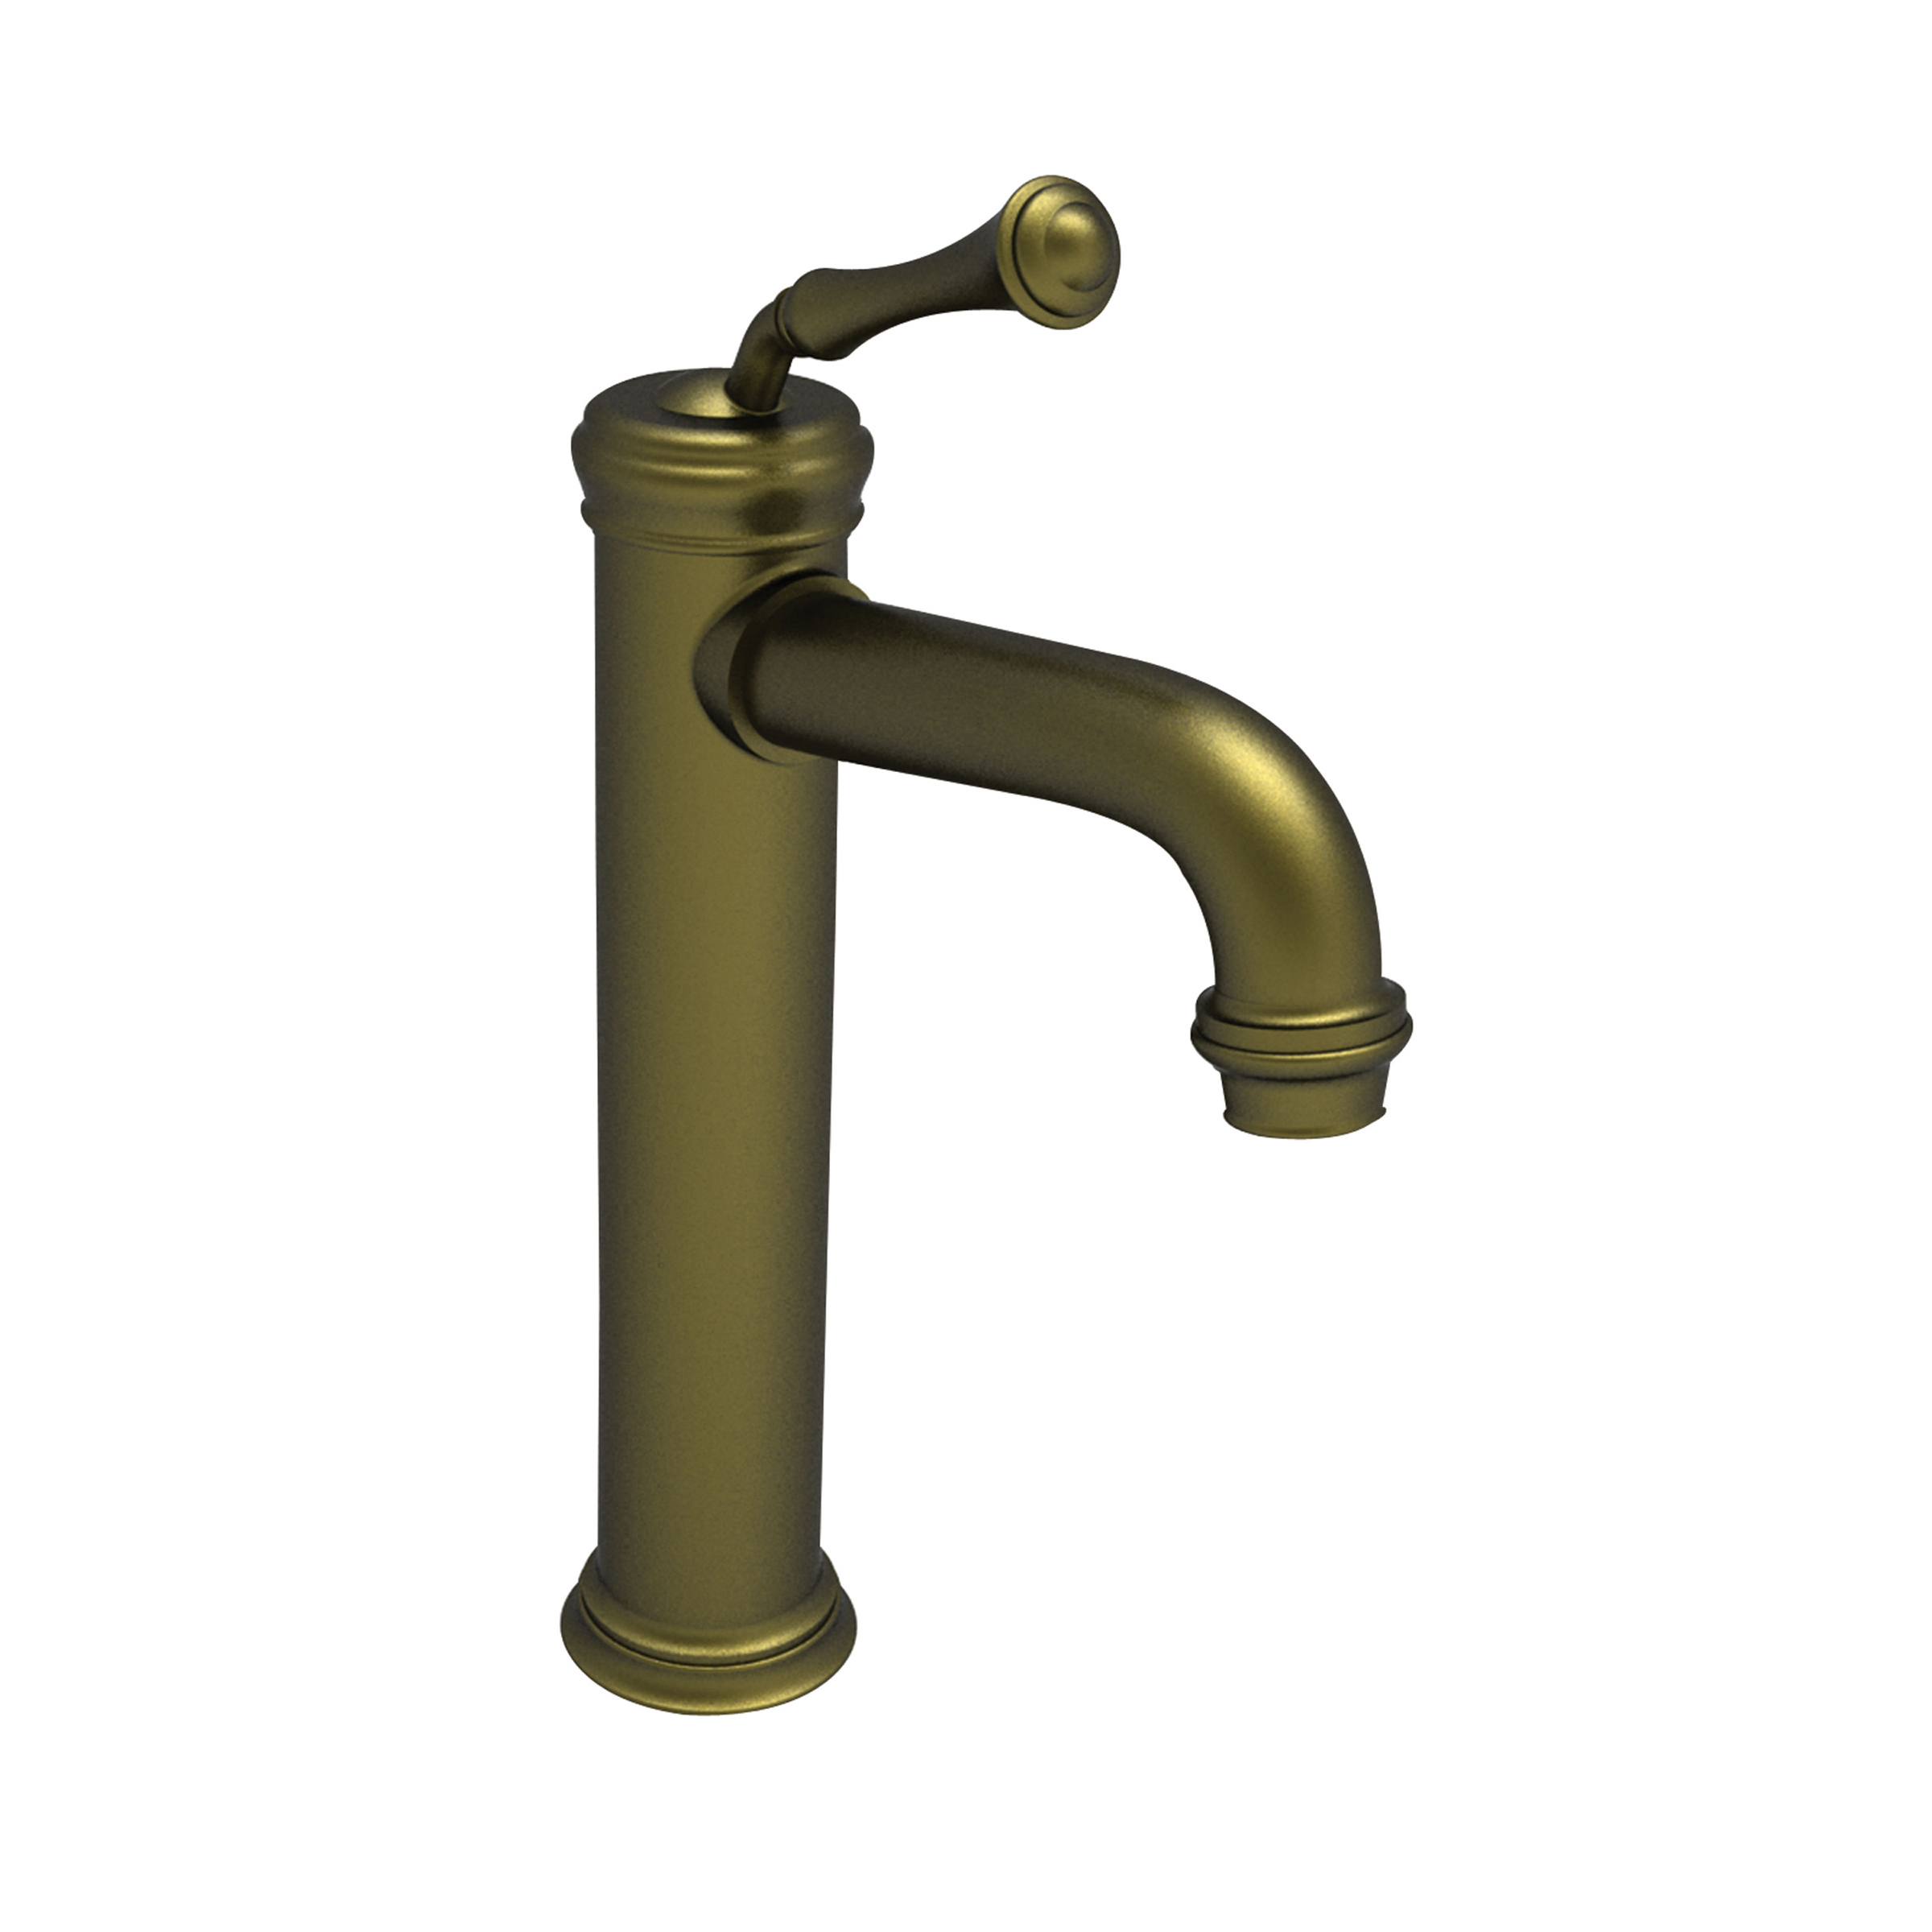 Newport Brass 9208 Single Hole Lavatory Faucet Tall Newport Brass Faucets